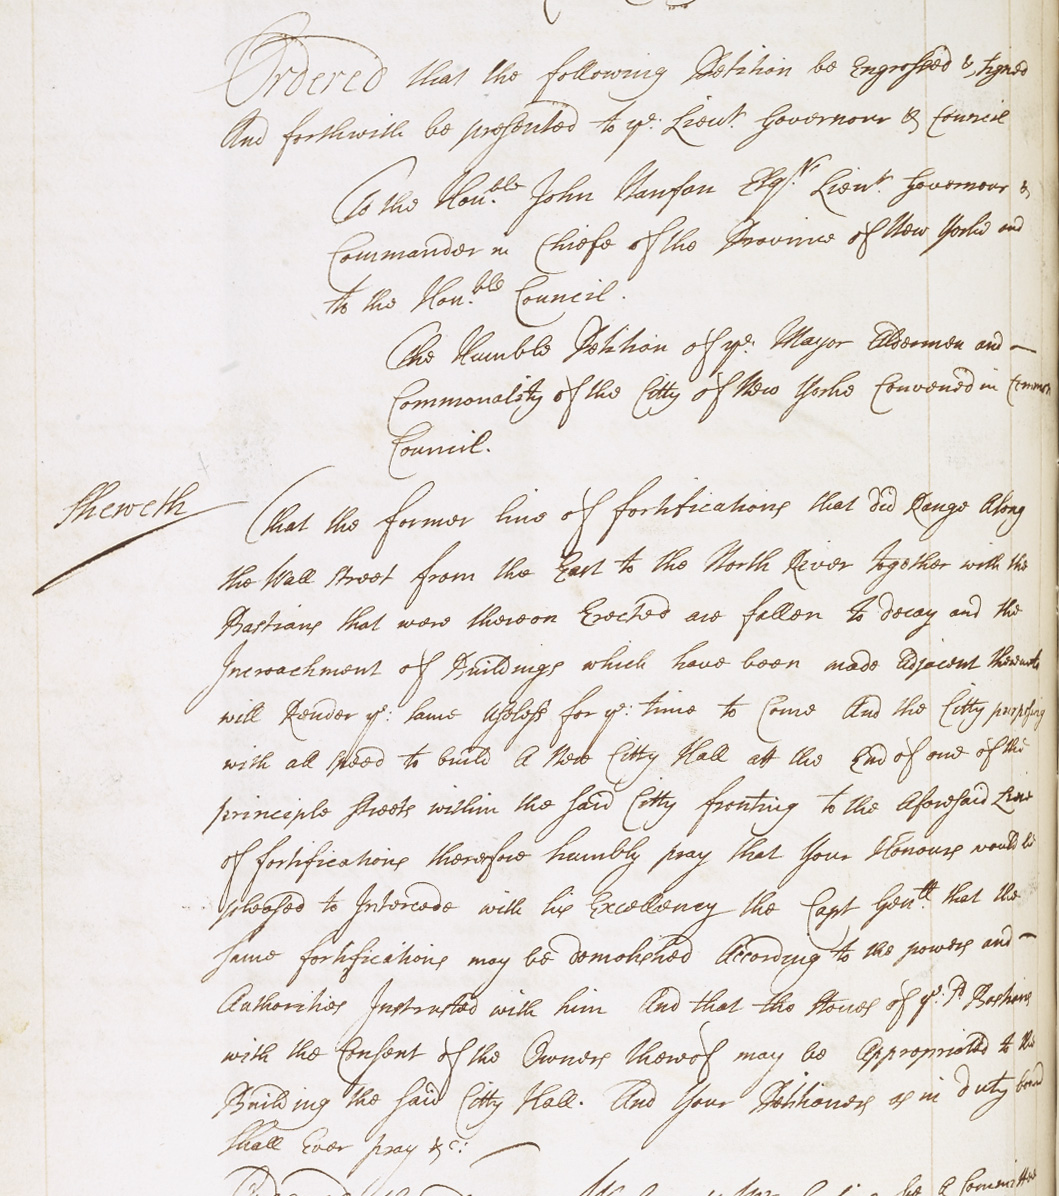 Common Council minutes from August 10, 1699, petition to tear down the fortifications on Wall Street and to use the stones of the bastions to build the new City Hall (on Wall at the end of Broad Street). NYC Municipal Archives.